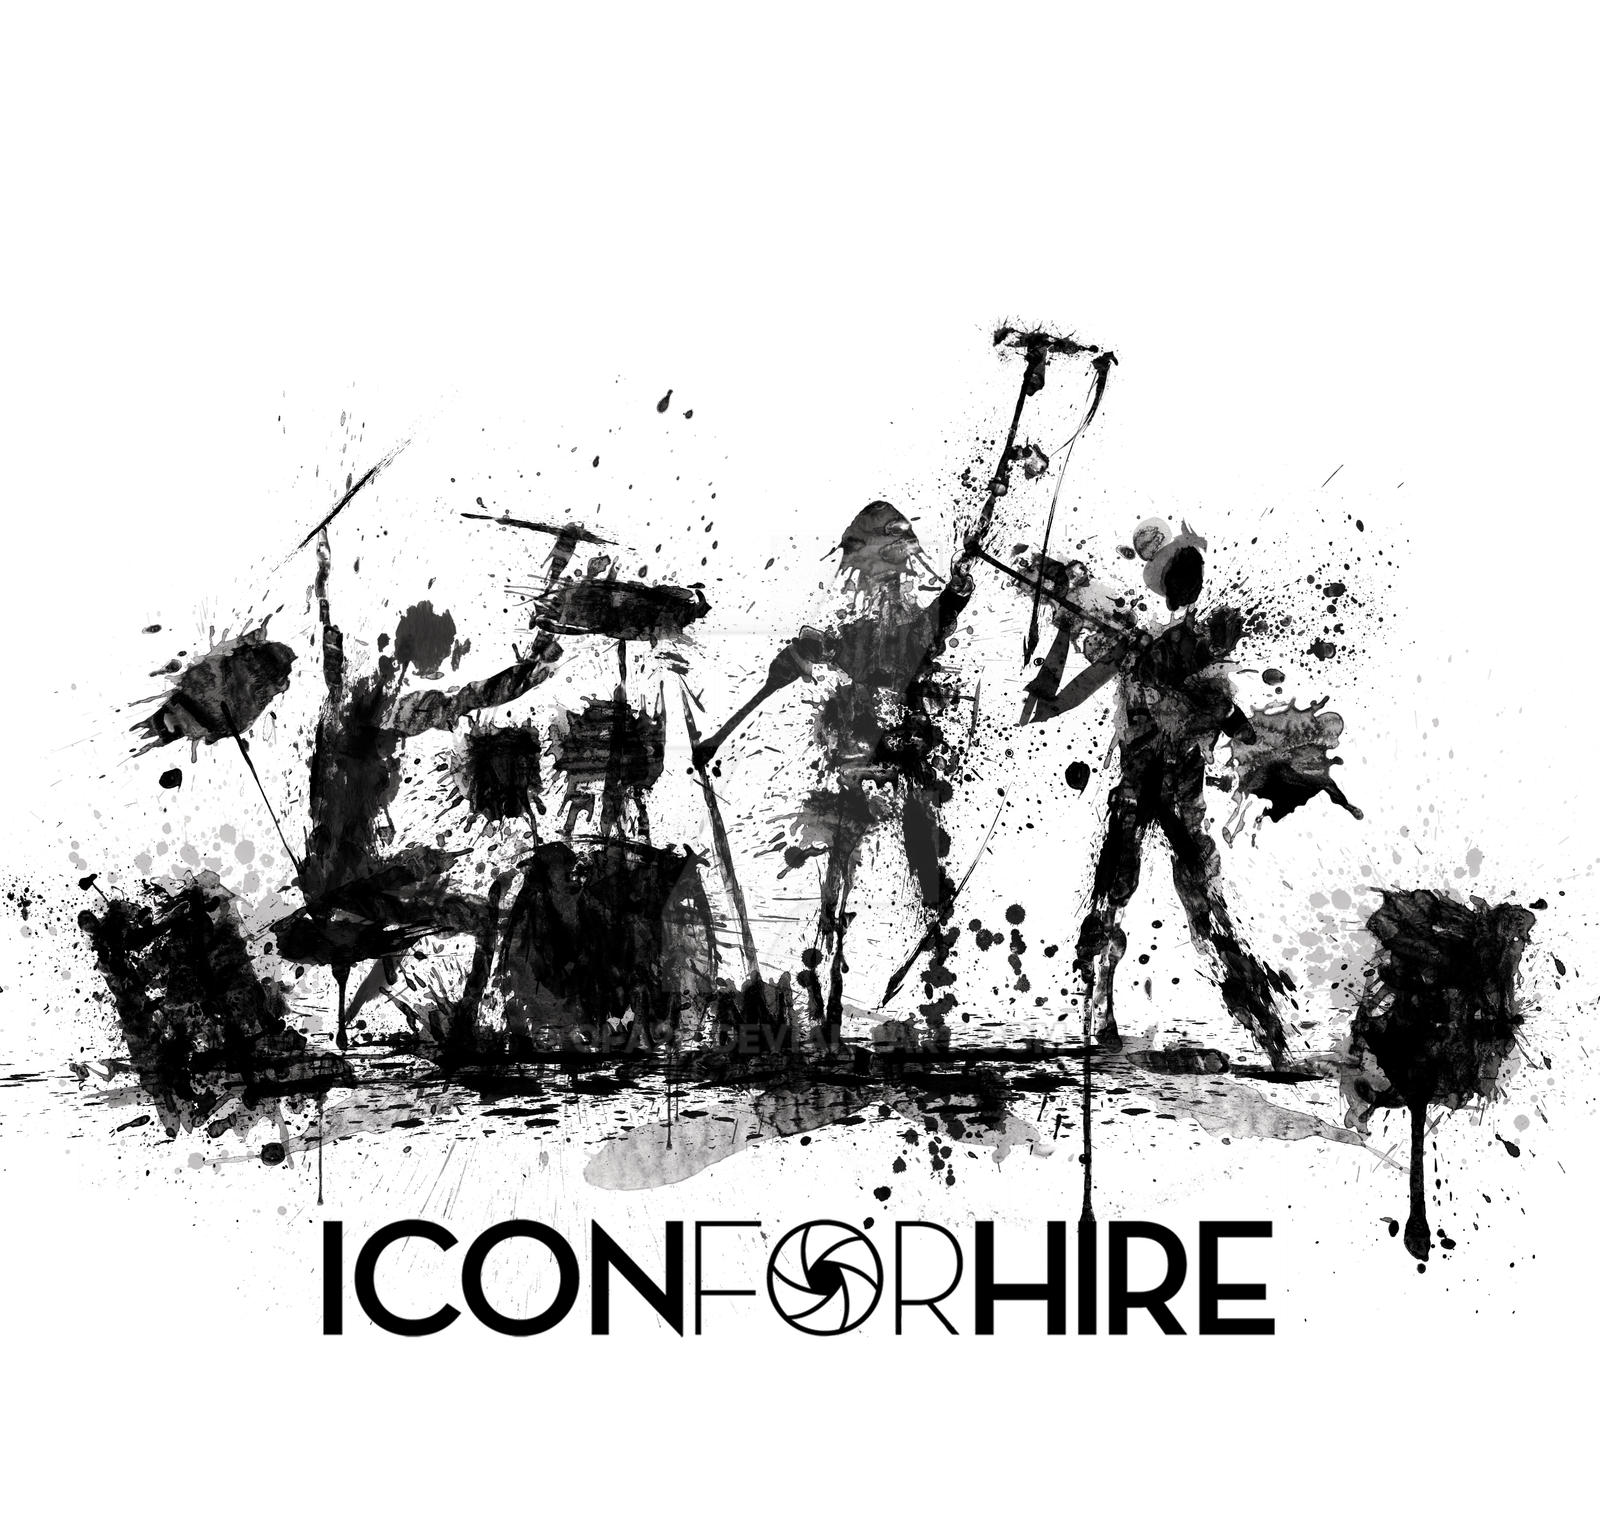 Shirt design wallpaper -  Official Icon For Hire T Shirt Design By Travis By Ofa20